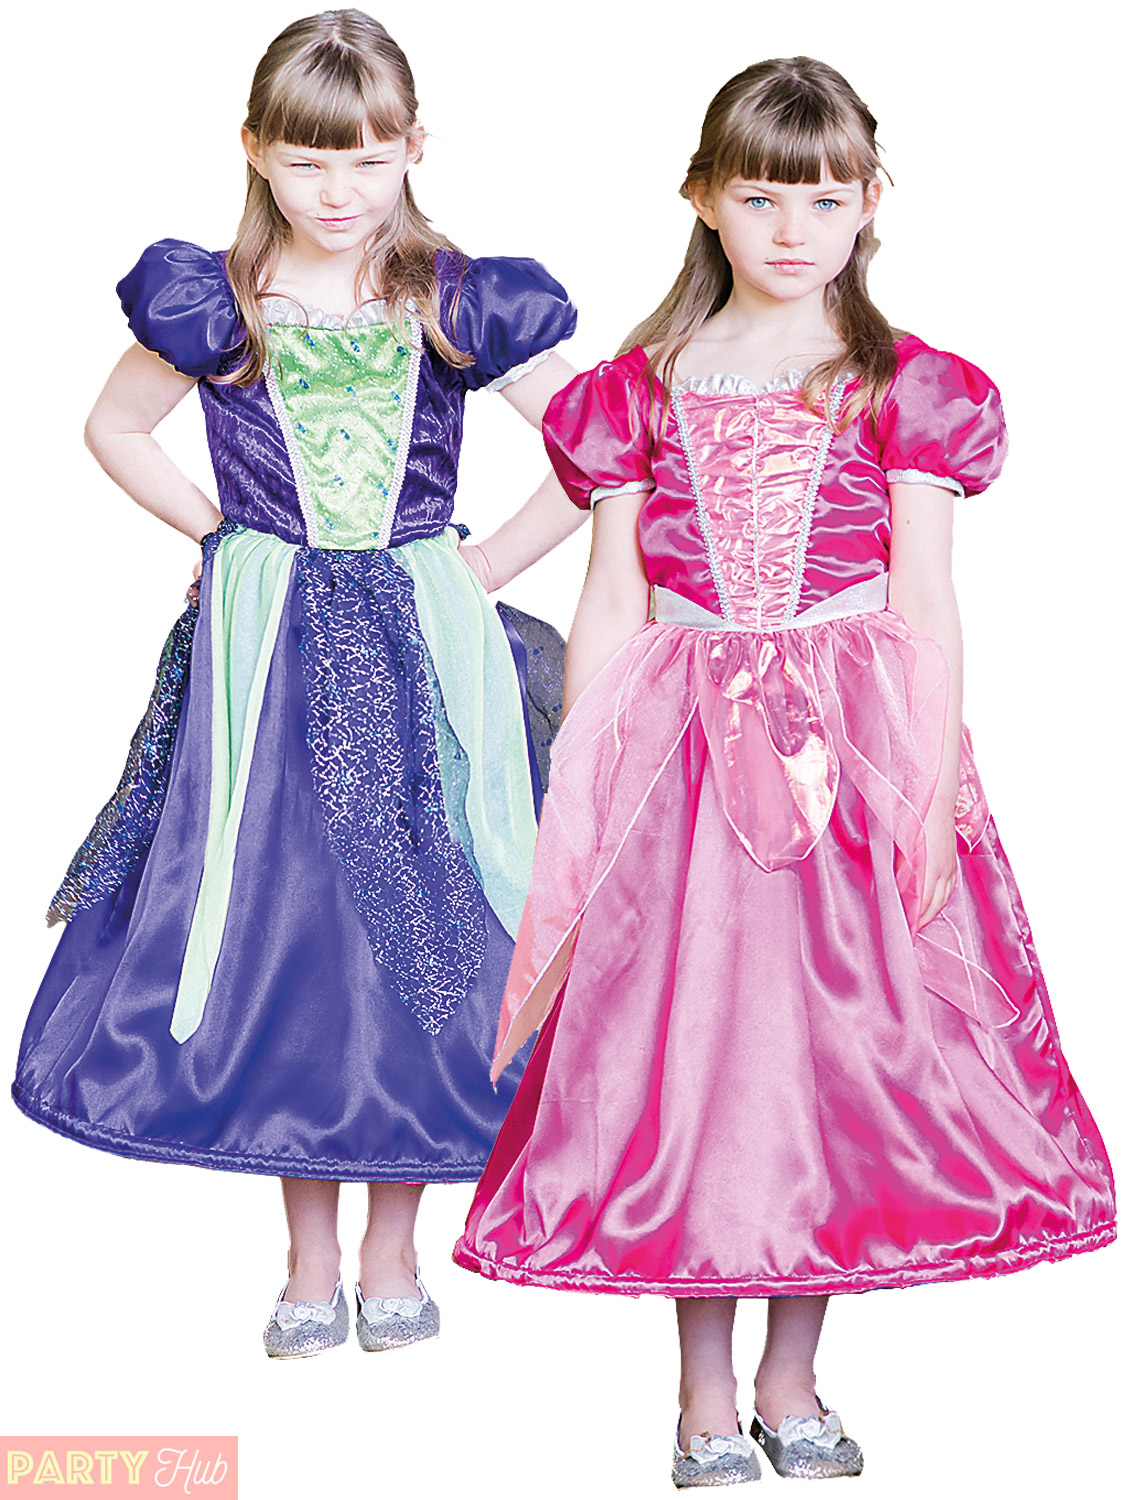 Childs Girls Reversible Costume Princess Pirate Witch Bride 2 in 1 ...